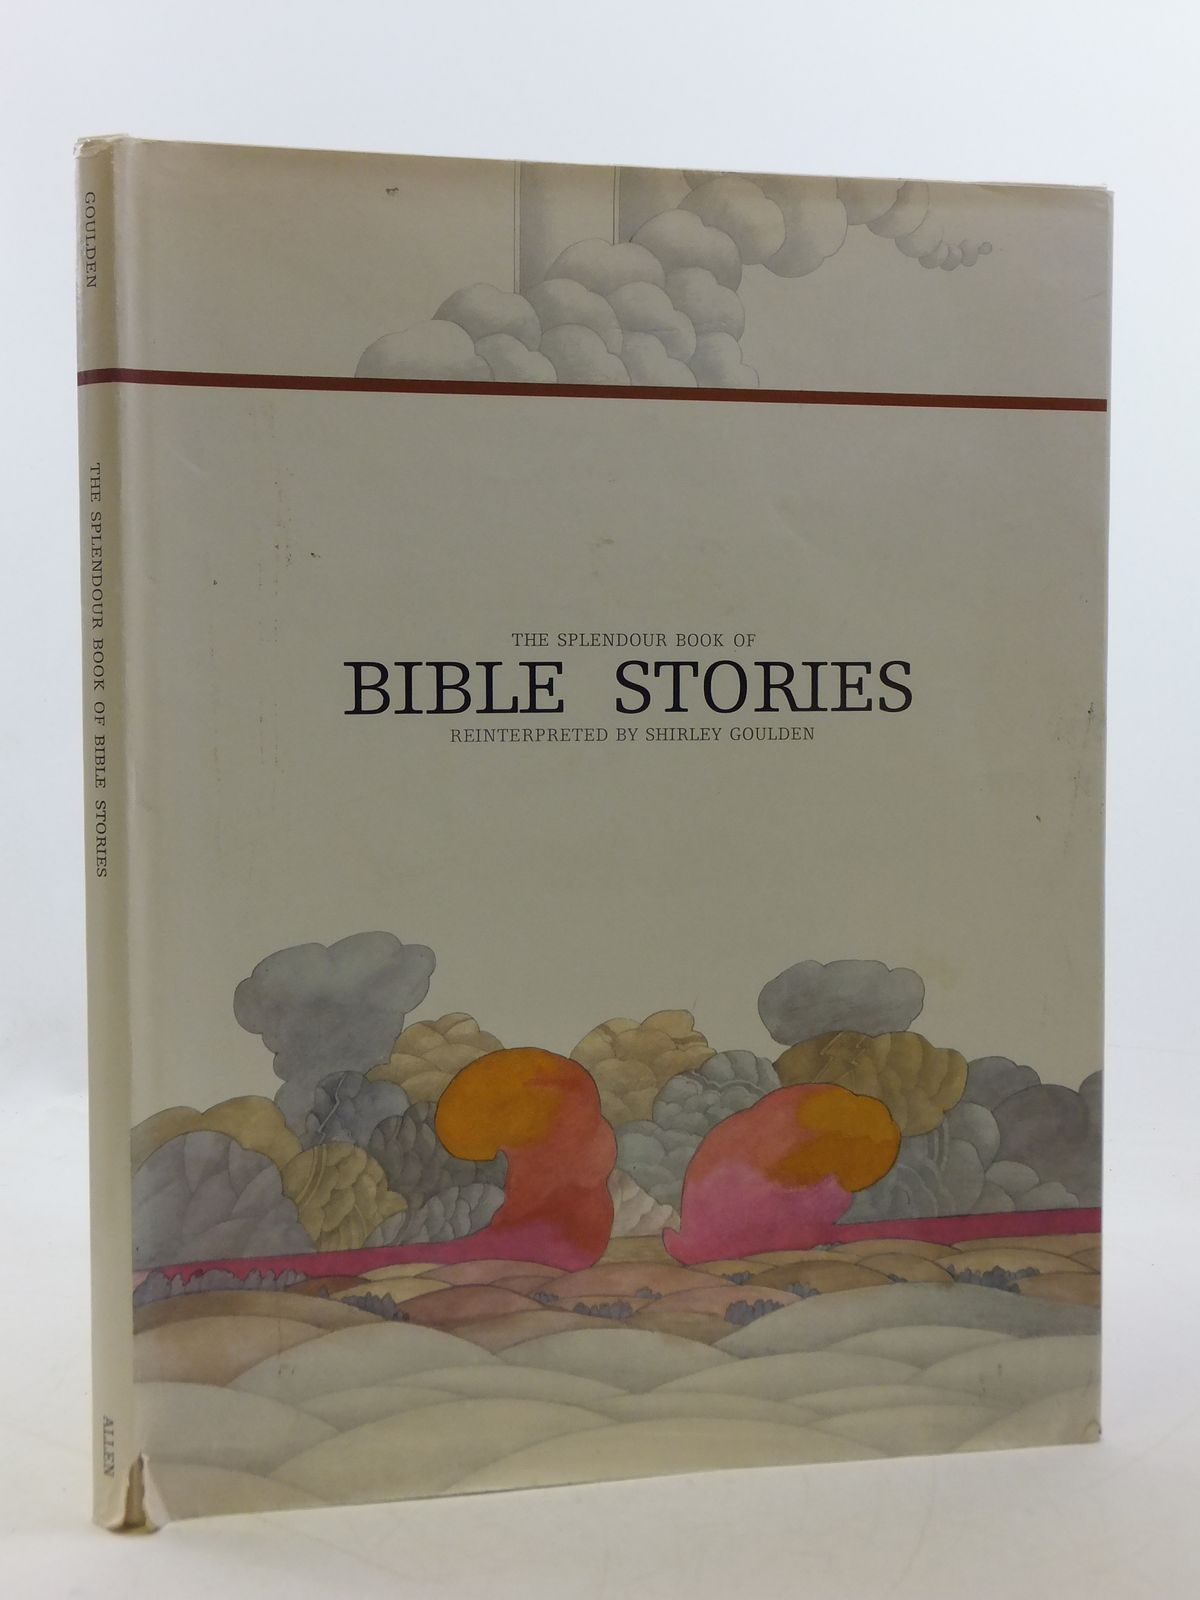 Photo of THE SPLENDOUR BOOK OF BIBLE STORIES written by Goulden, Shirley illustrated by Claveloux, Nicole Lasalle, Charles-Louis Perrouin, Jean-Claude published by W.H. Allen & Co (STOCK CODE: 1605651)  for sale by Stella & Rose's Books